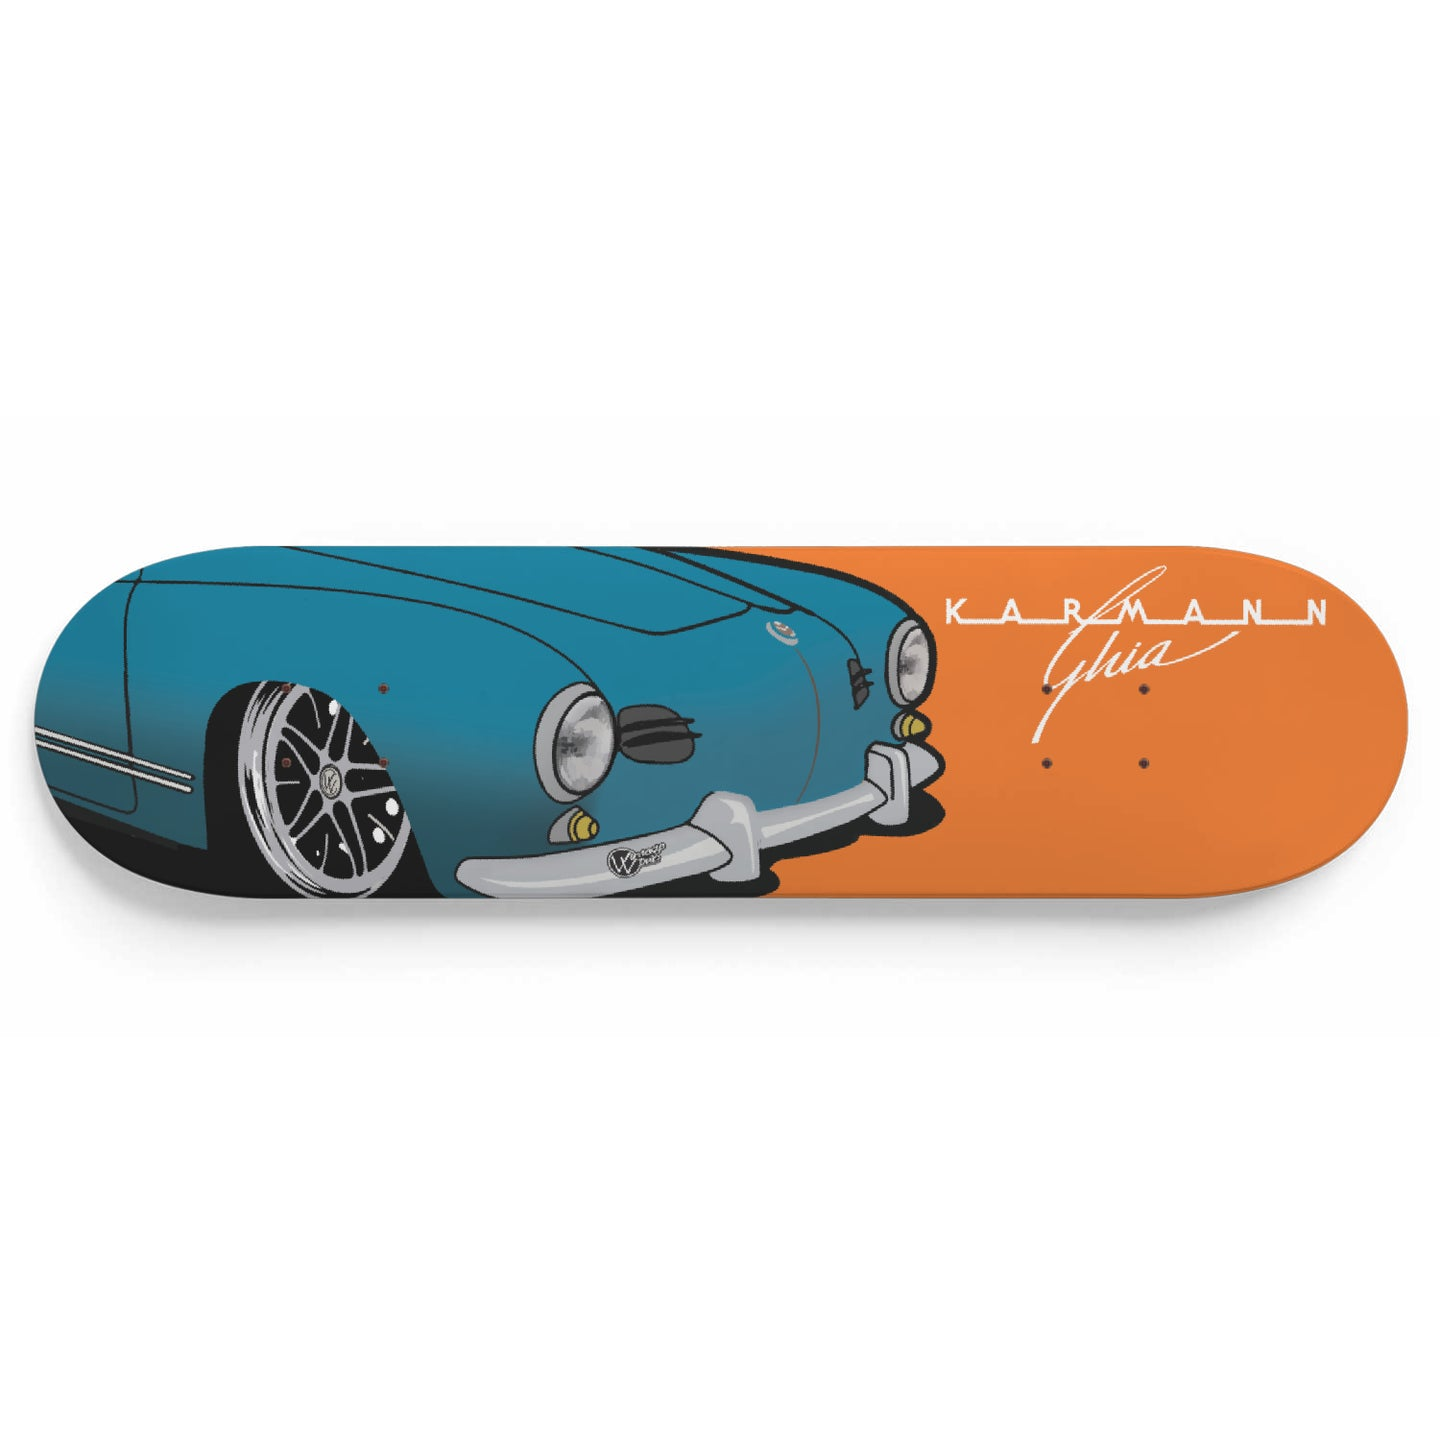 Vintage Ghia Skate Deck Blue/Orange - Vintage Vdub